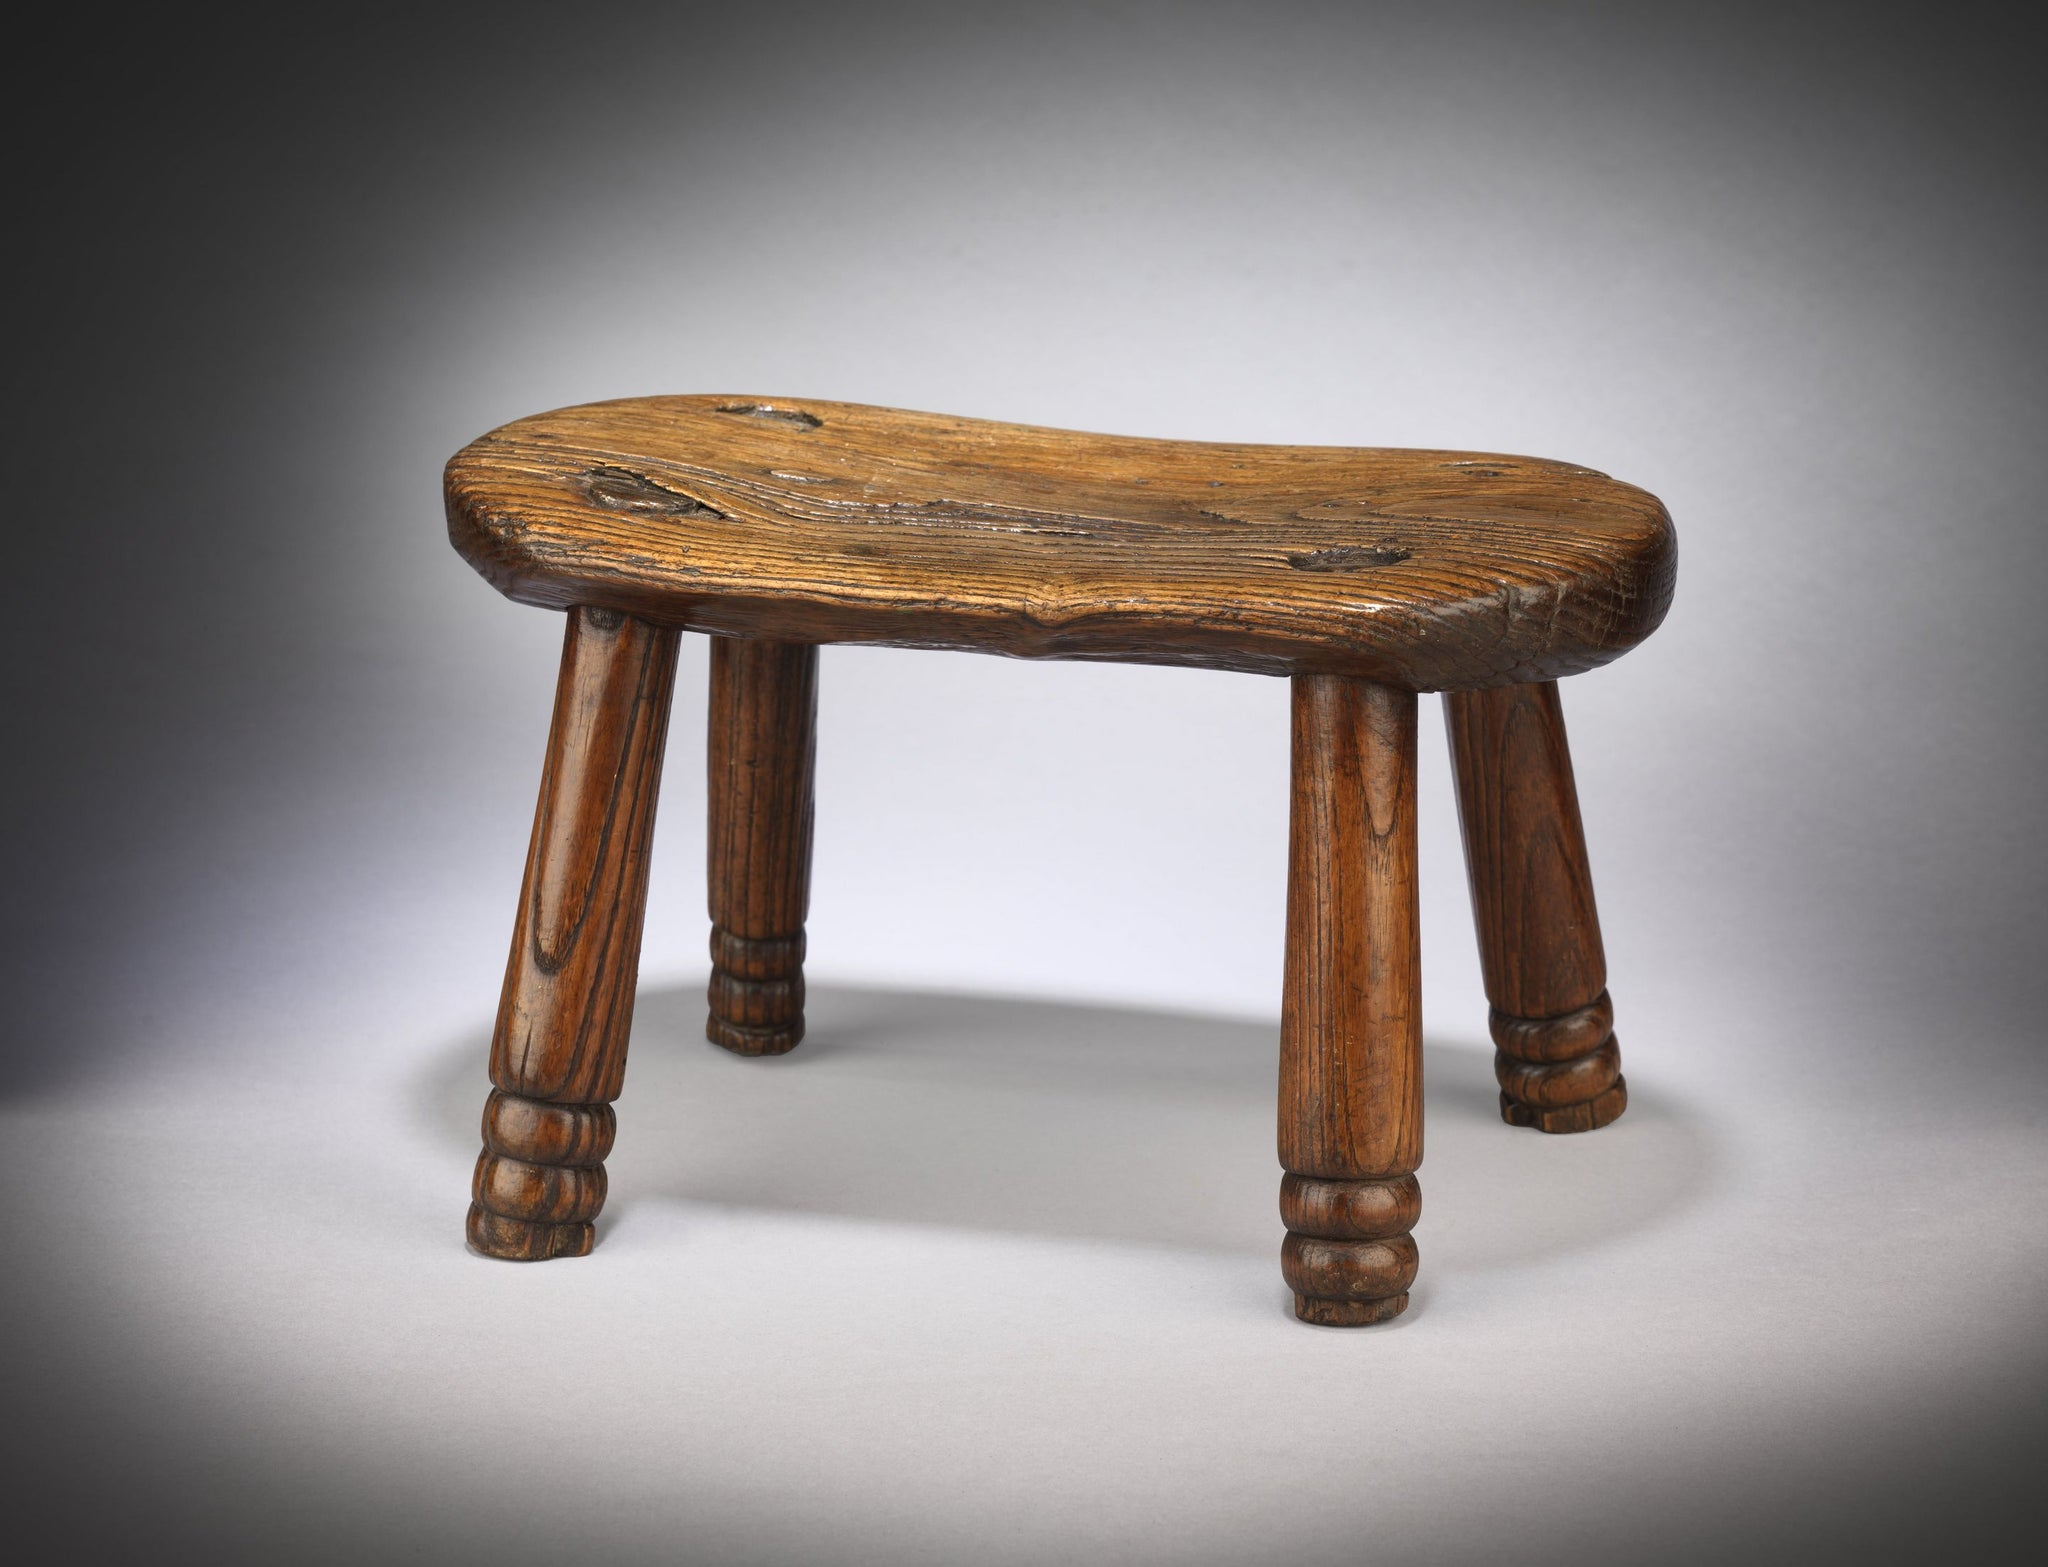 Vernacular Georgian Four Legged Stool